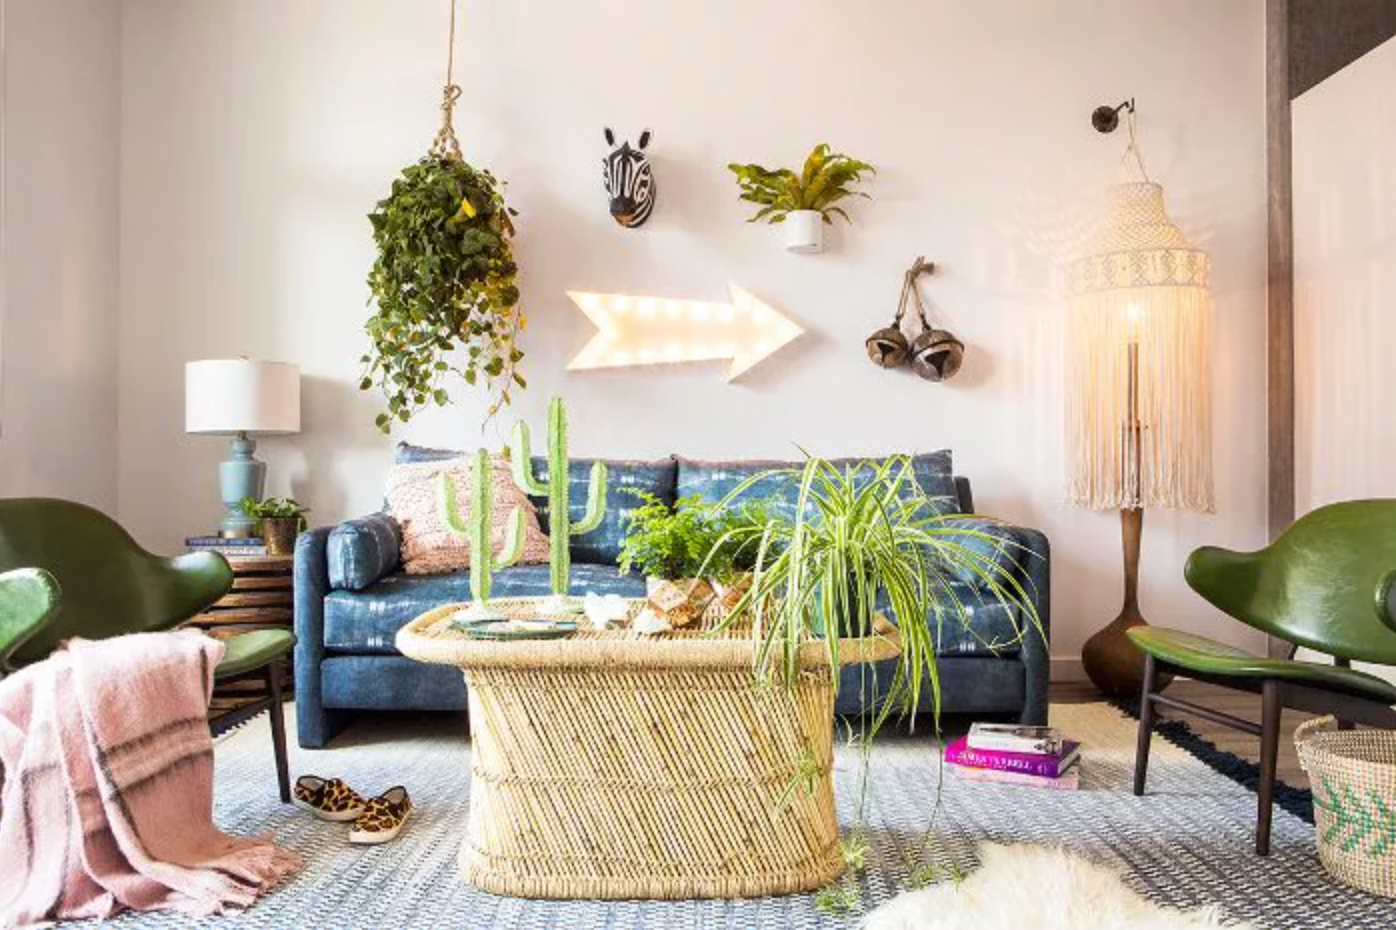 Bohemian-inspired living room with colorful furniture and plants